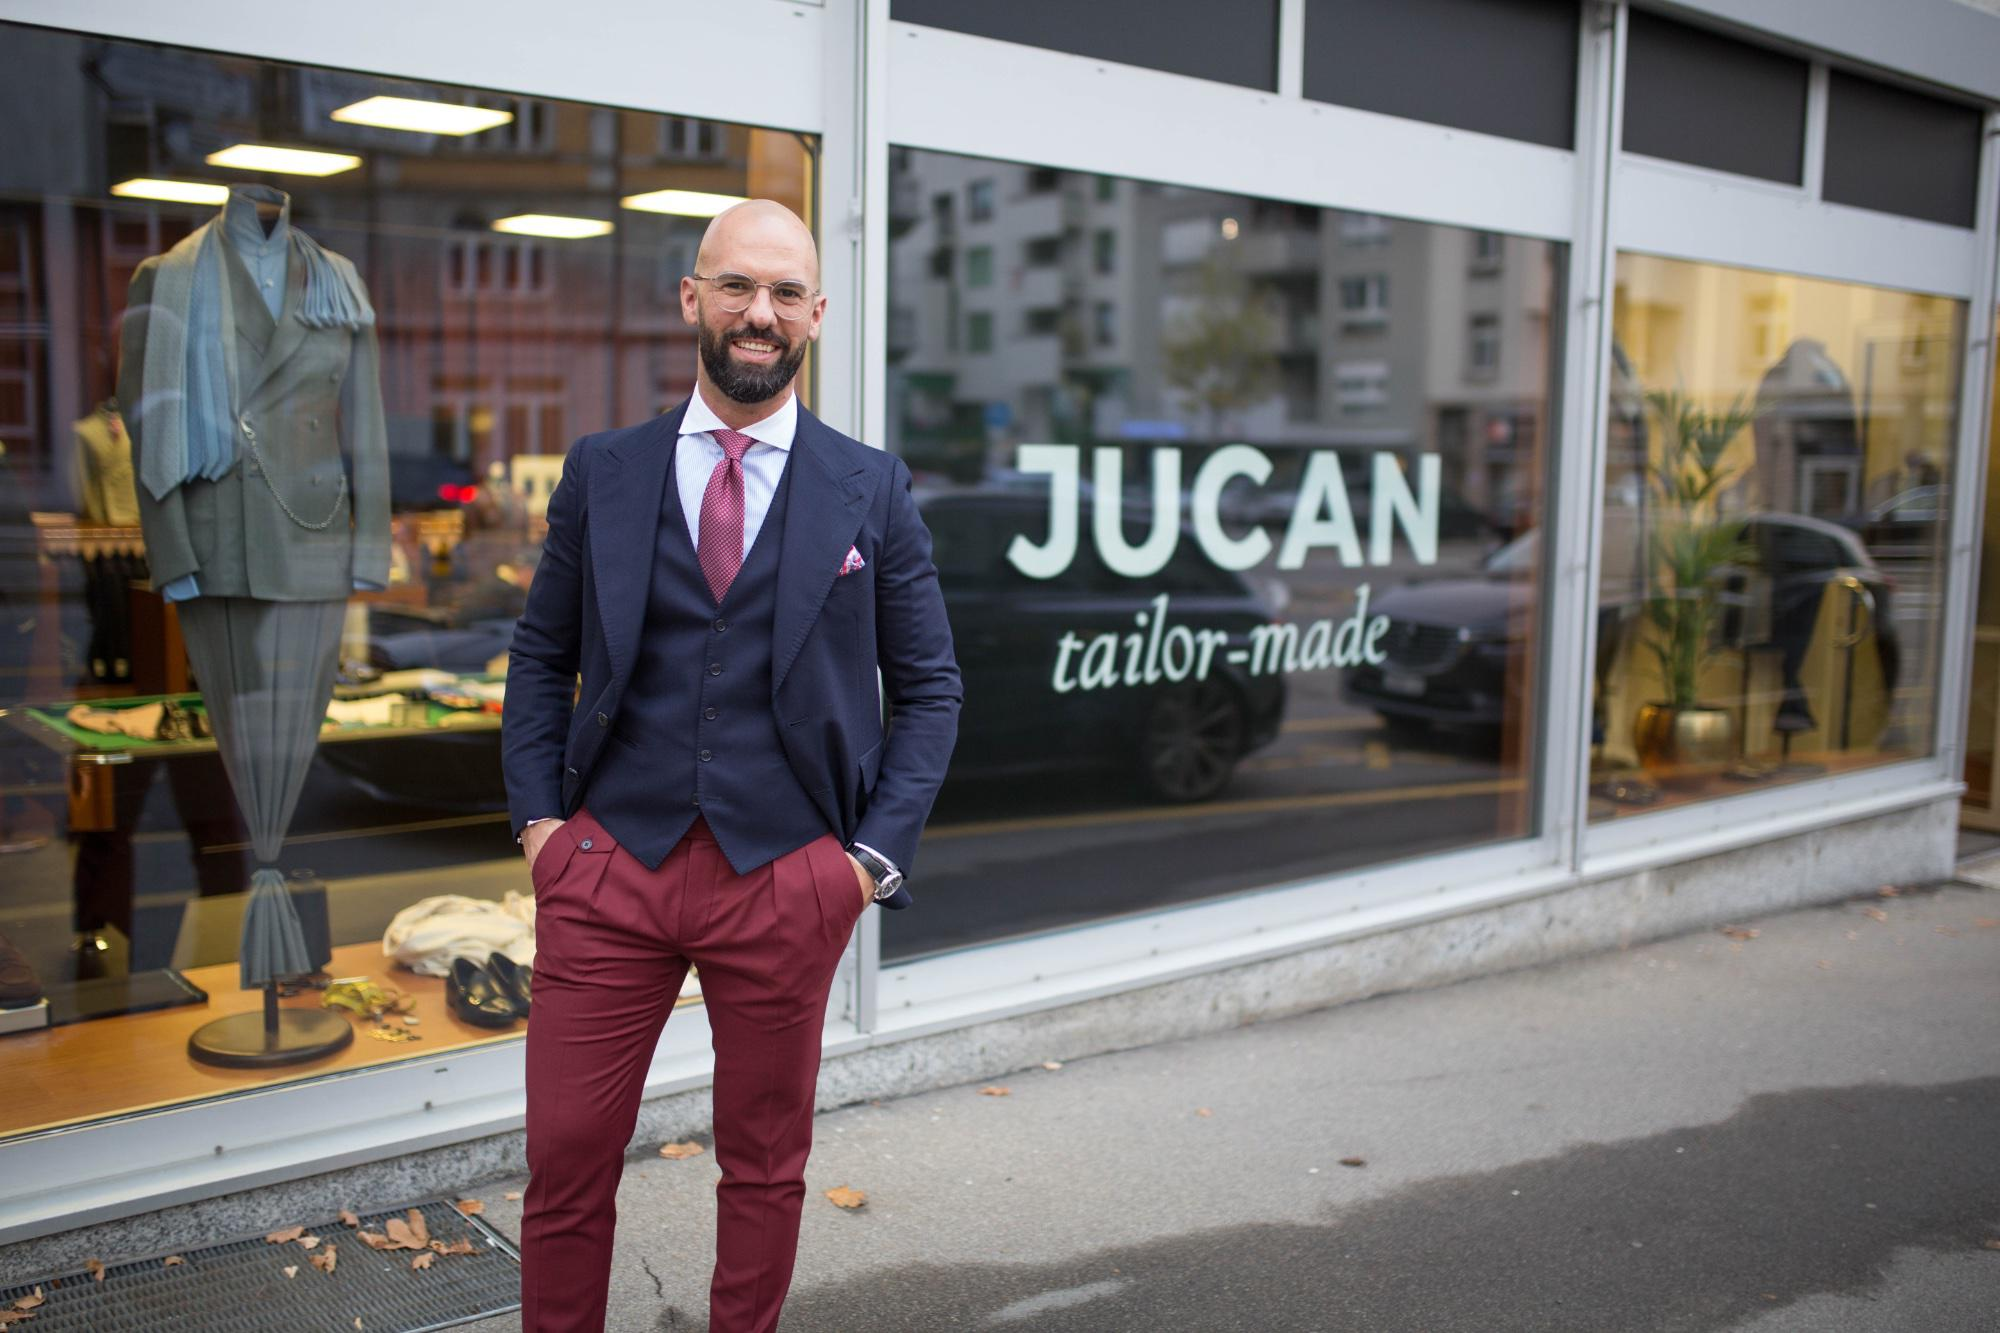 Jucan tailor-made